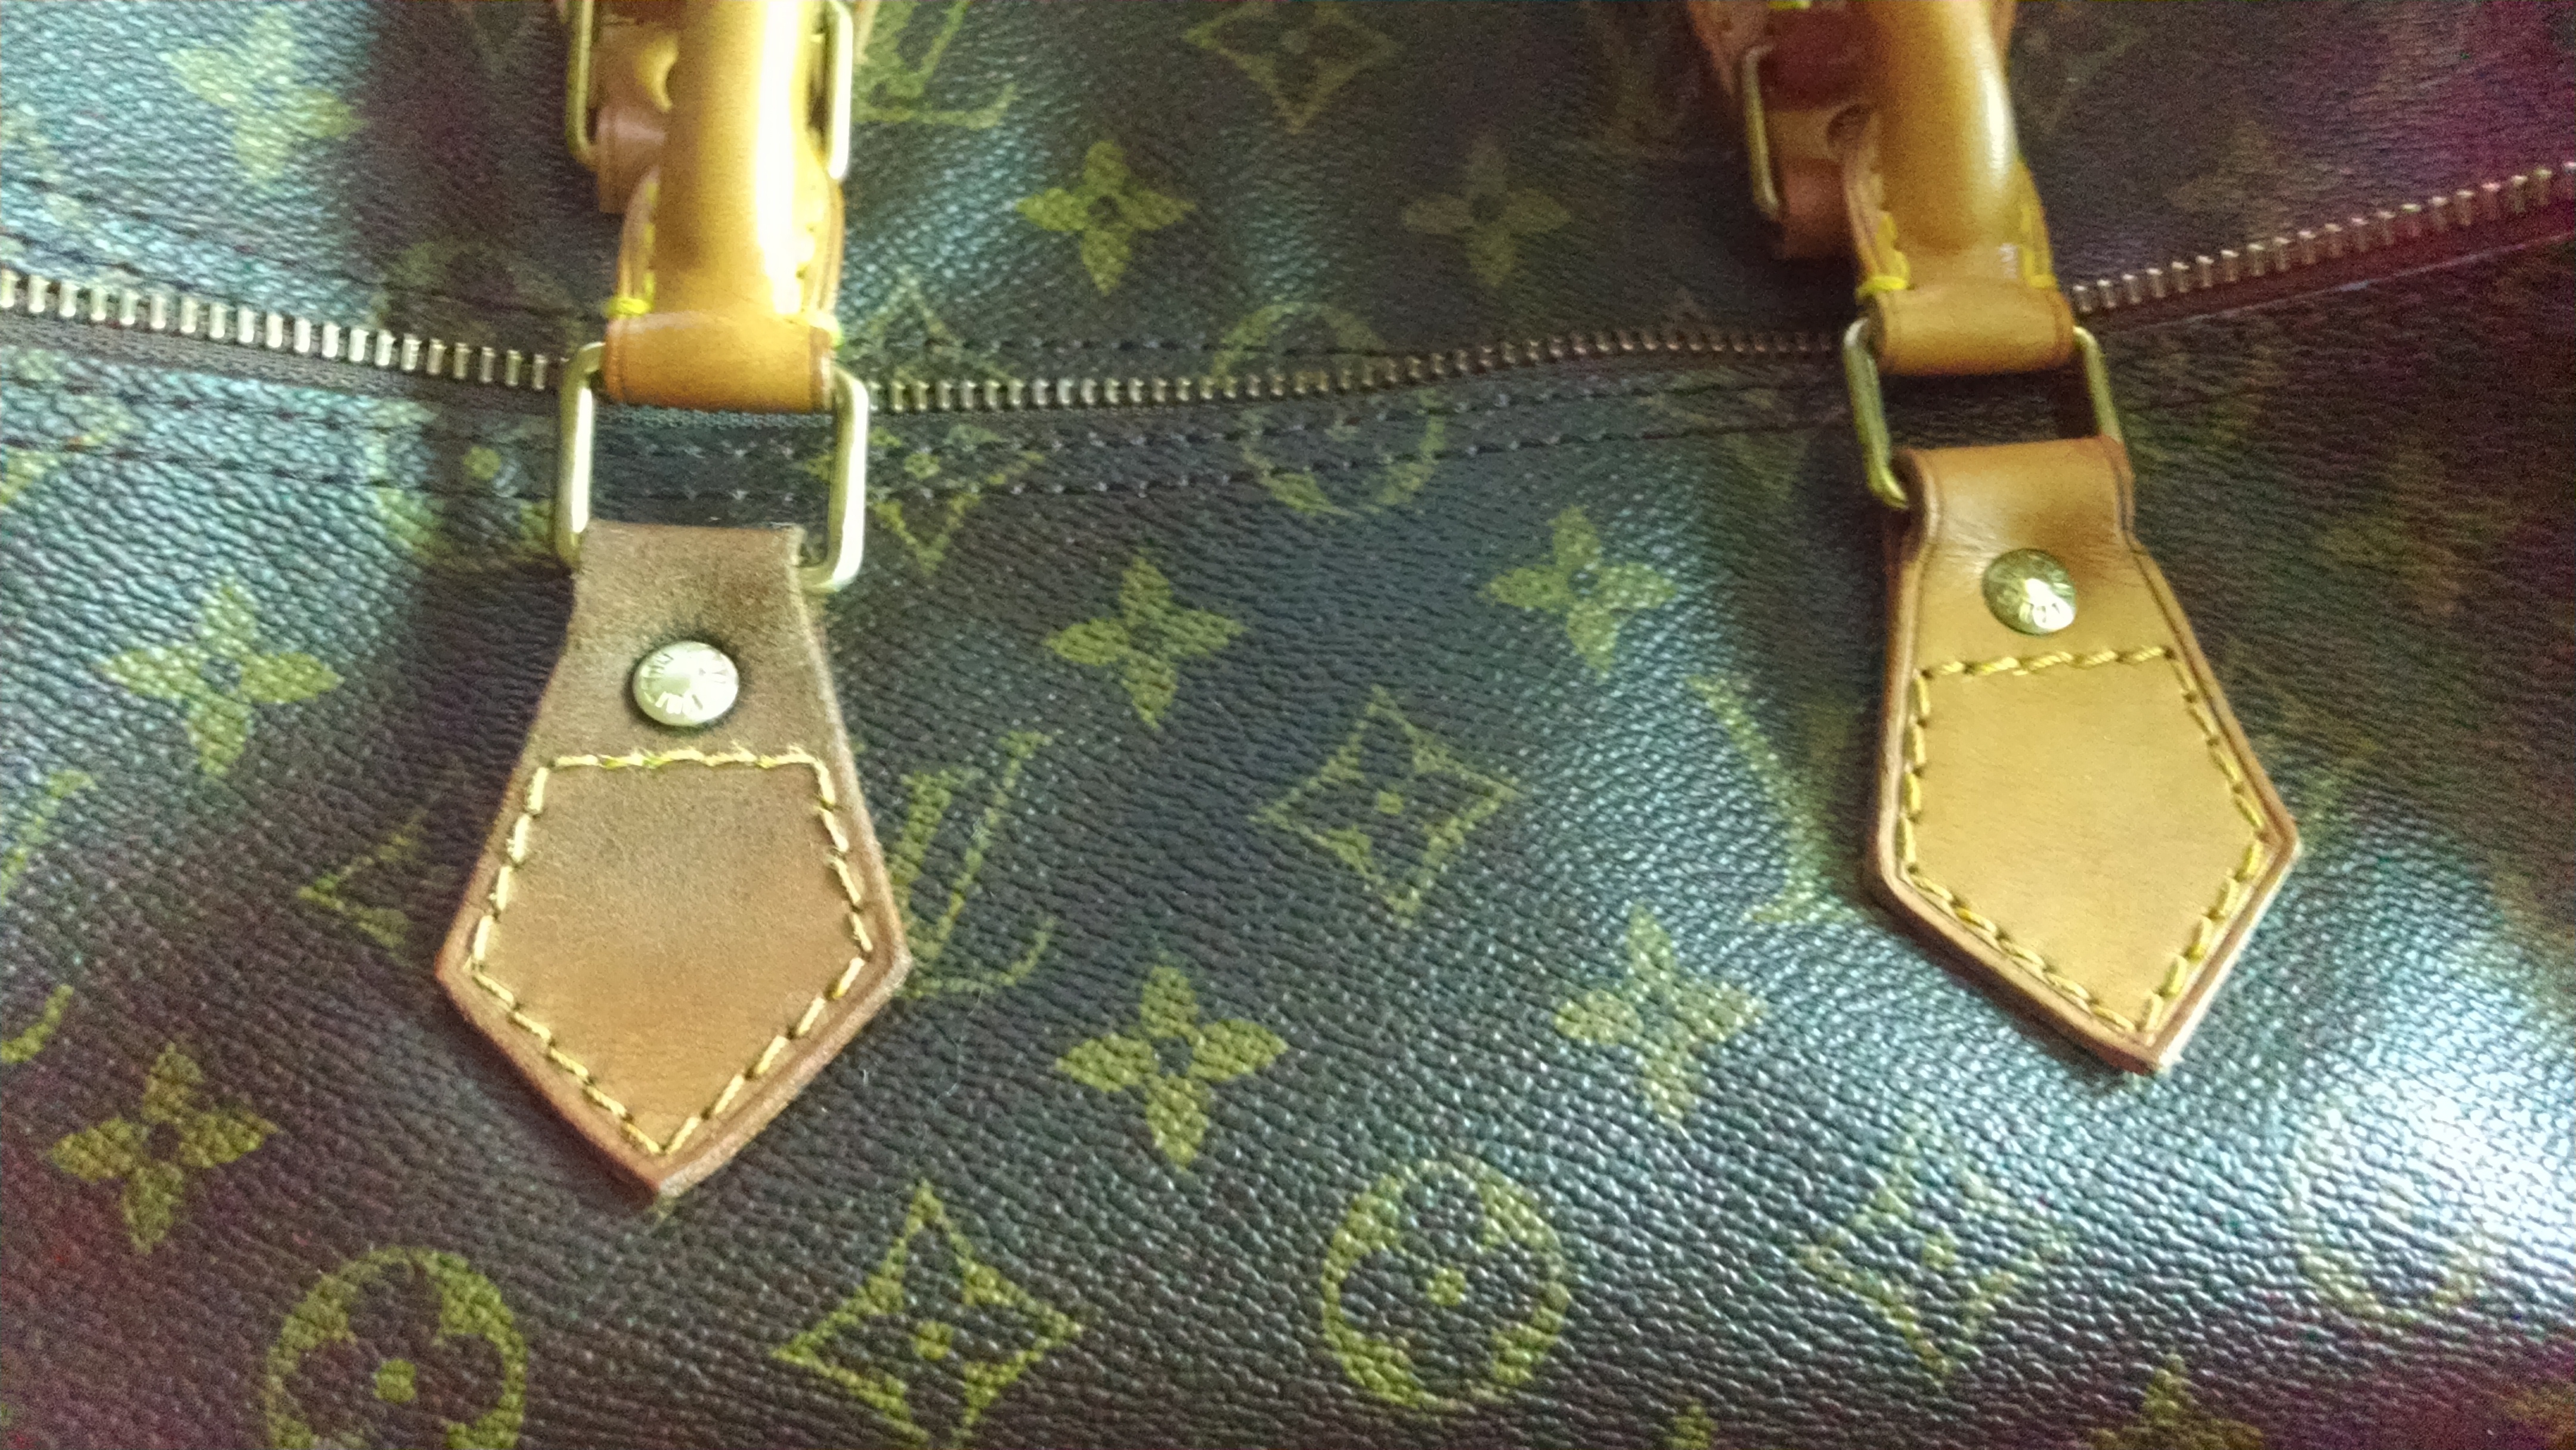 Louis Vuitton - Repair Surface Damaged Louis Vachetta leather from ... 8eec3027a1